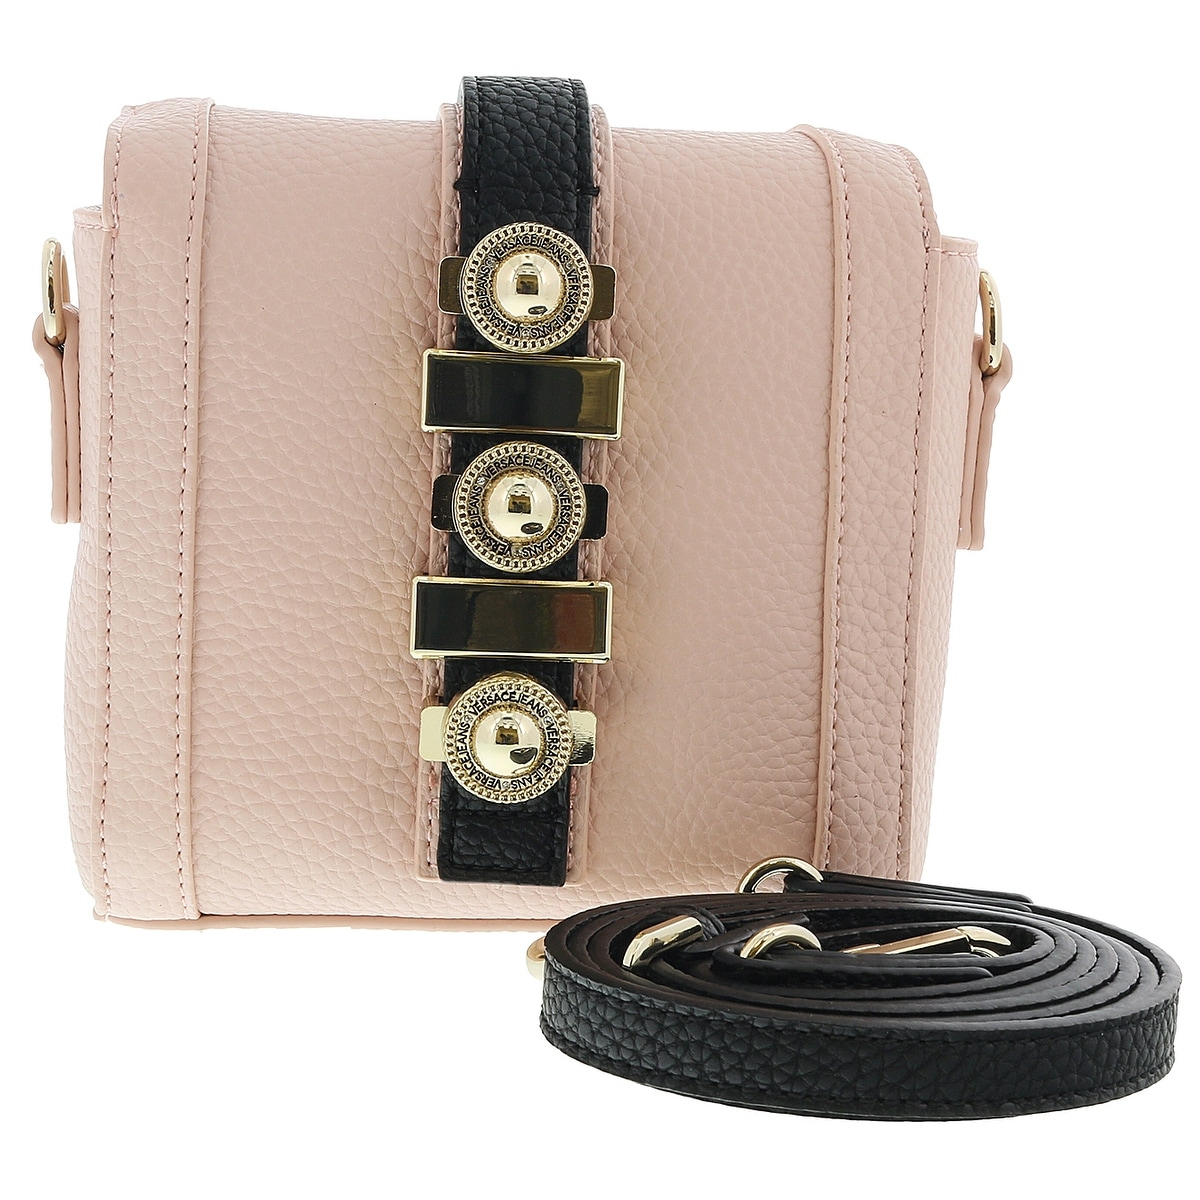 19d0d287f Shop Versace EE1VRBBH6 Soft Pink Crossbody Bag - Free Shipping Today -  Overstock - 25613900